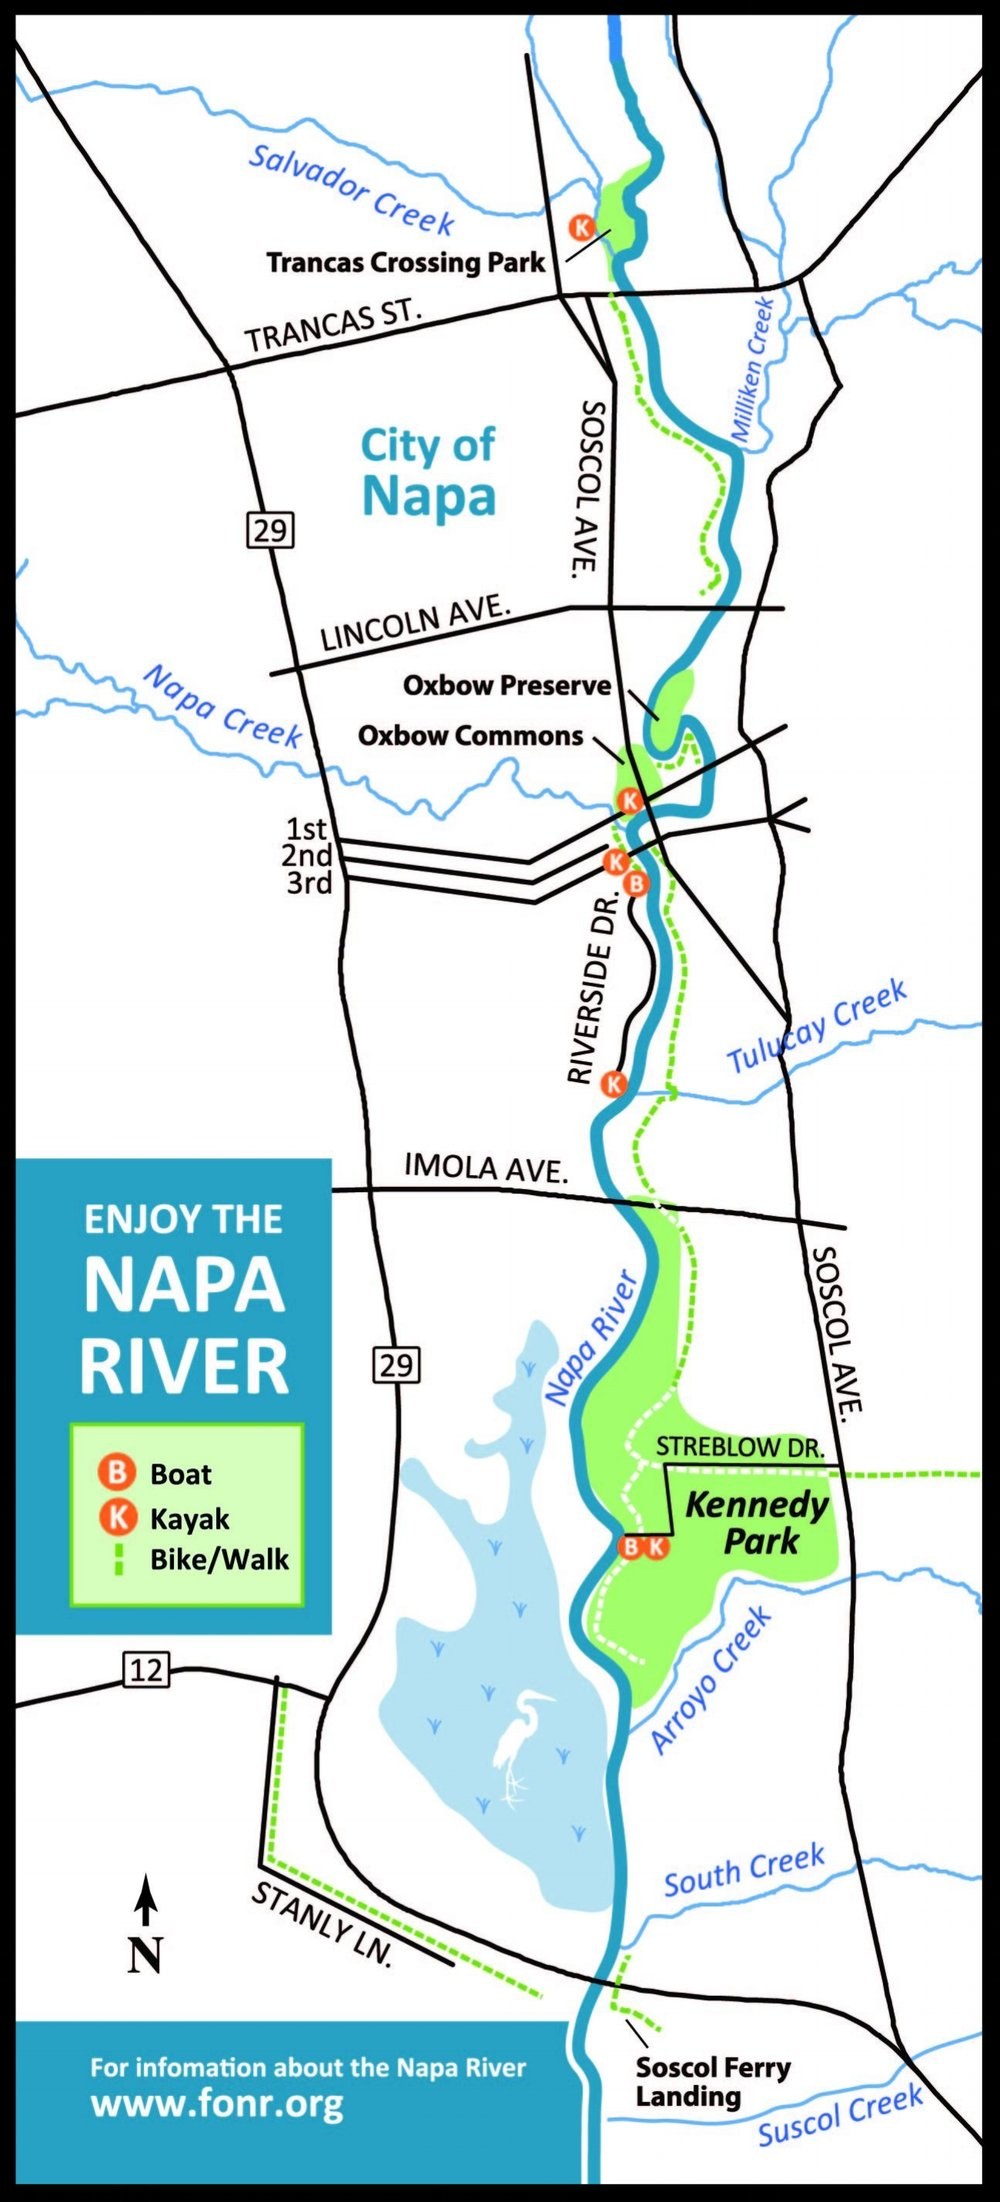 The Living River Flood Project is transforming the River & waterfront in Napa: restored mudflats and tidal marsh creates habitat for fish, birds and wildlife... and places to recreate! - Here are some locations to bike, walk, or launch a kayak, canoe or paddle board and explore the Living River